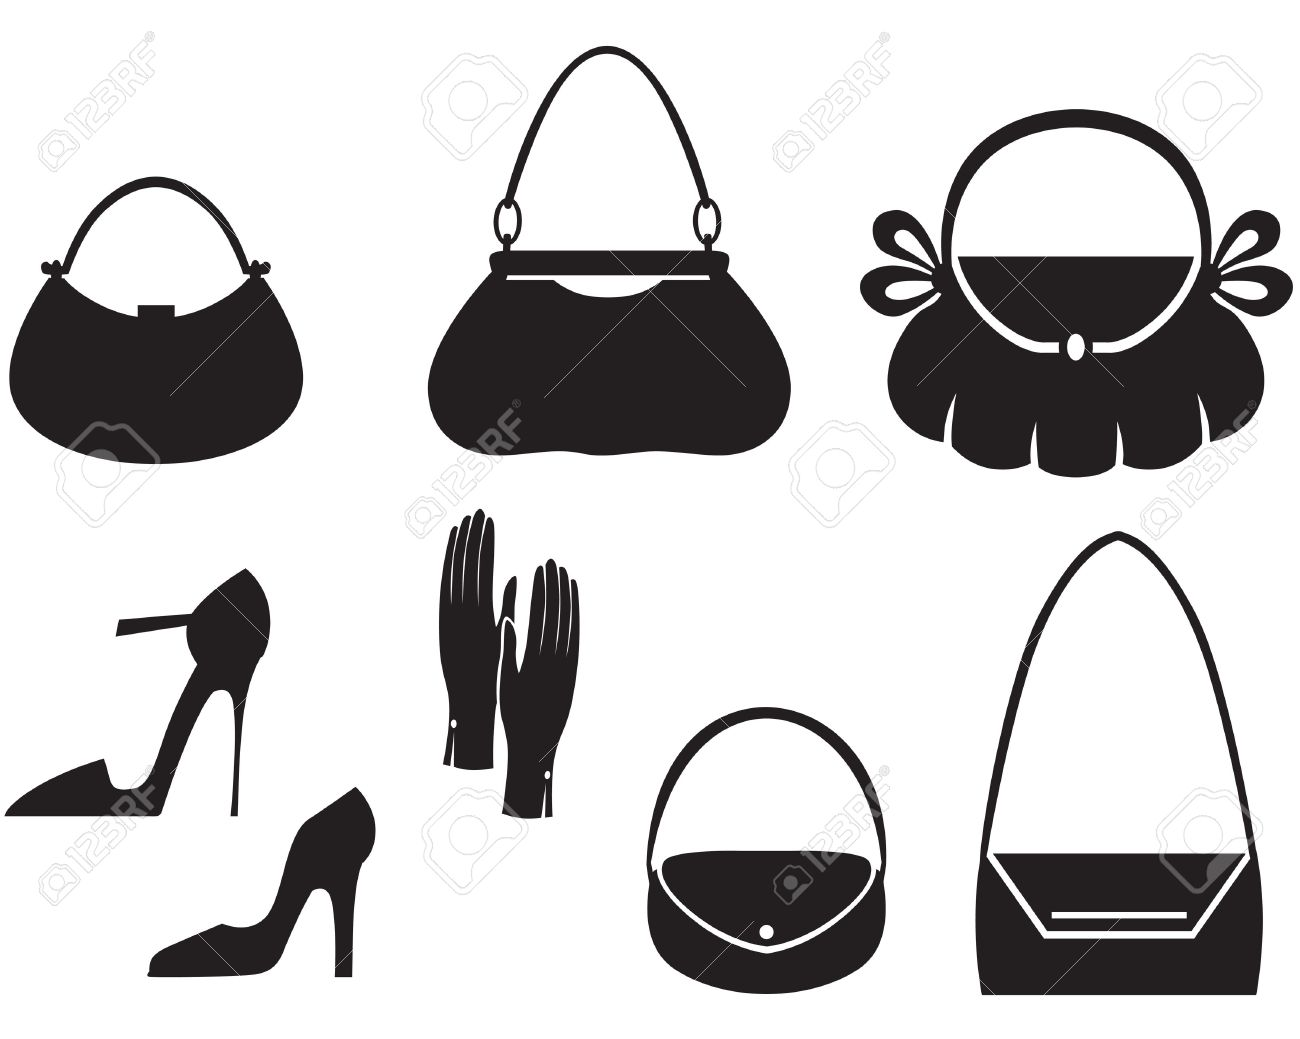 Clipart sac a main jpg royalty free download Silhouette Of Handbag Seamless Pattern Royalty Free Cliparts ... jpg royalty free download